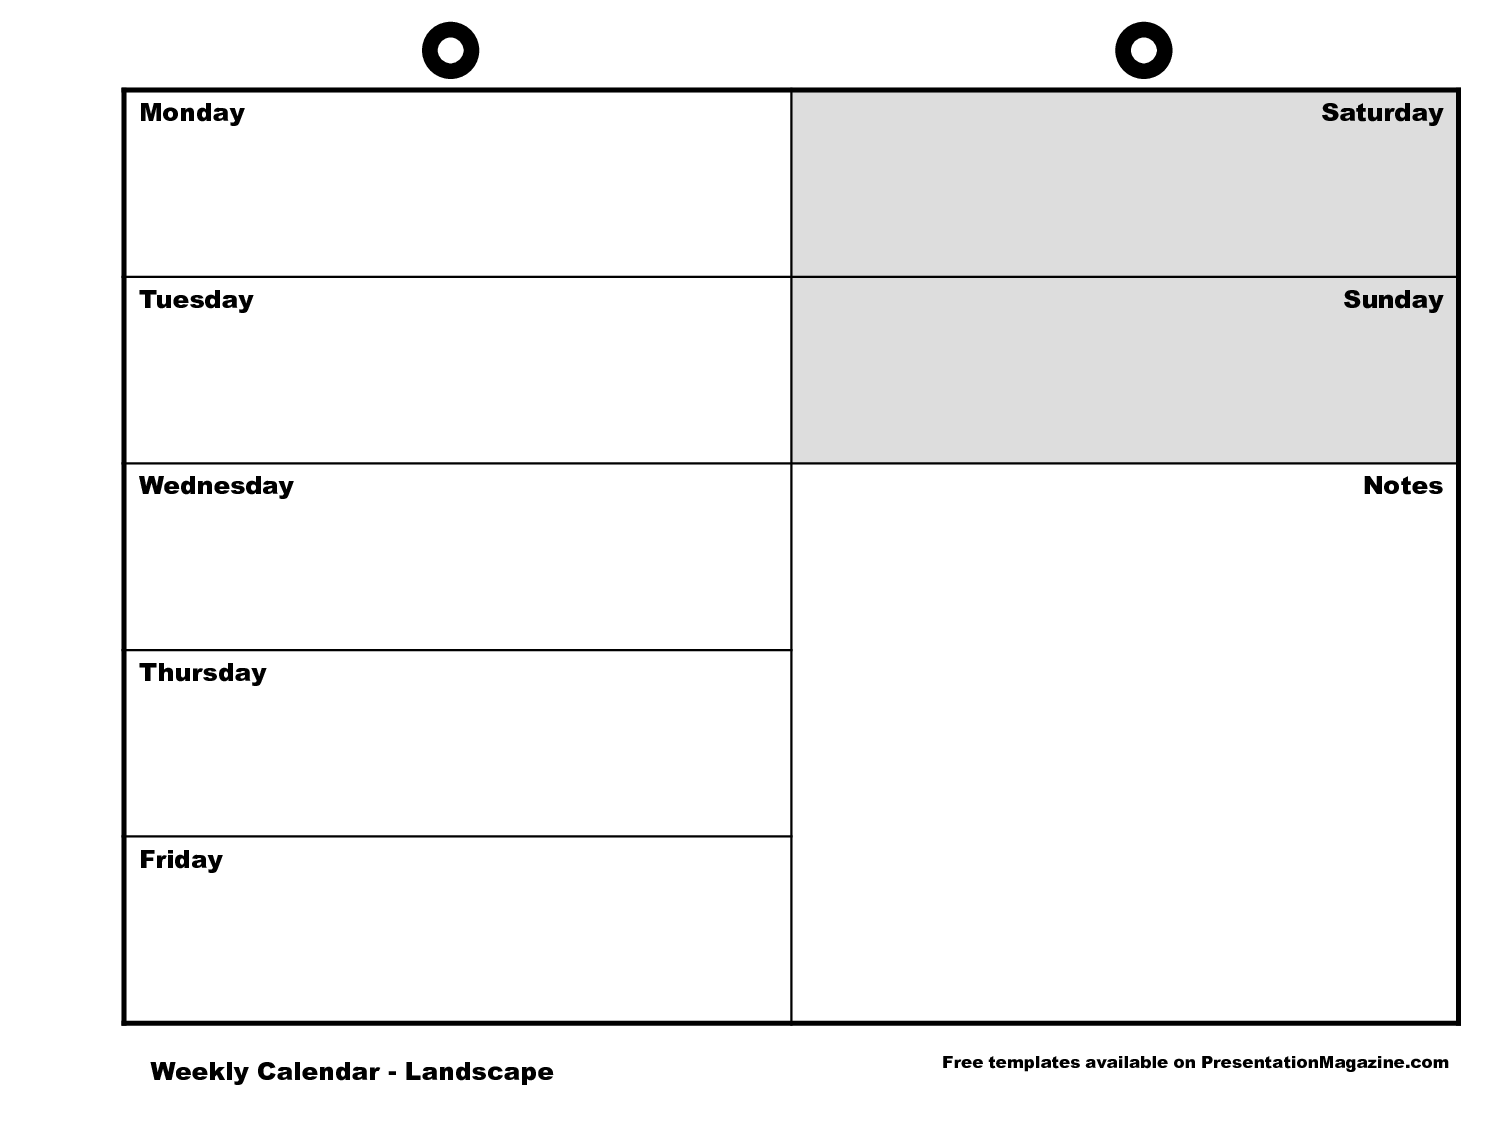 Weekly Calendar Monday To Sunday : Monday through sunday calendar template